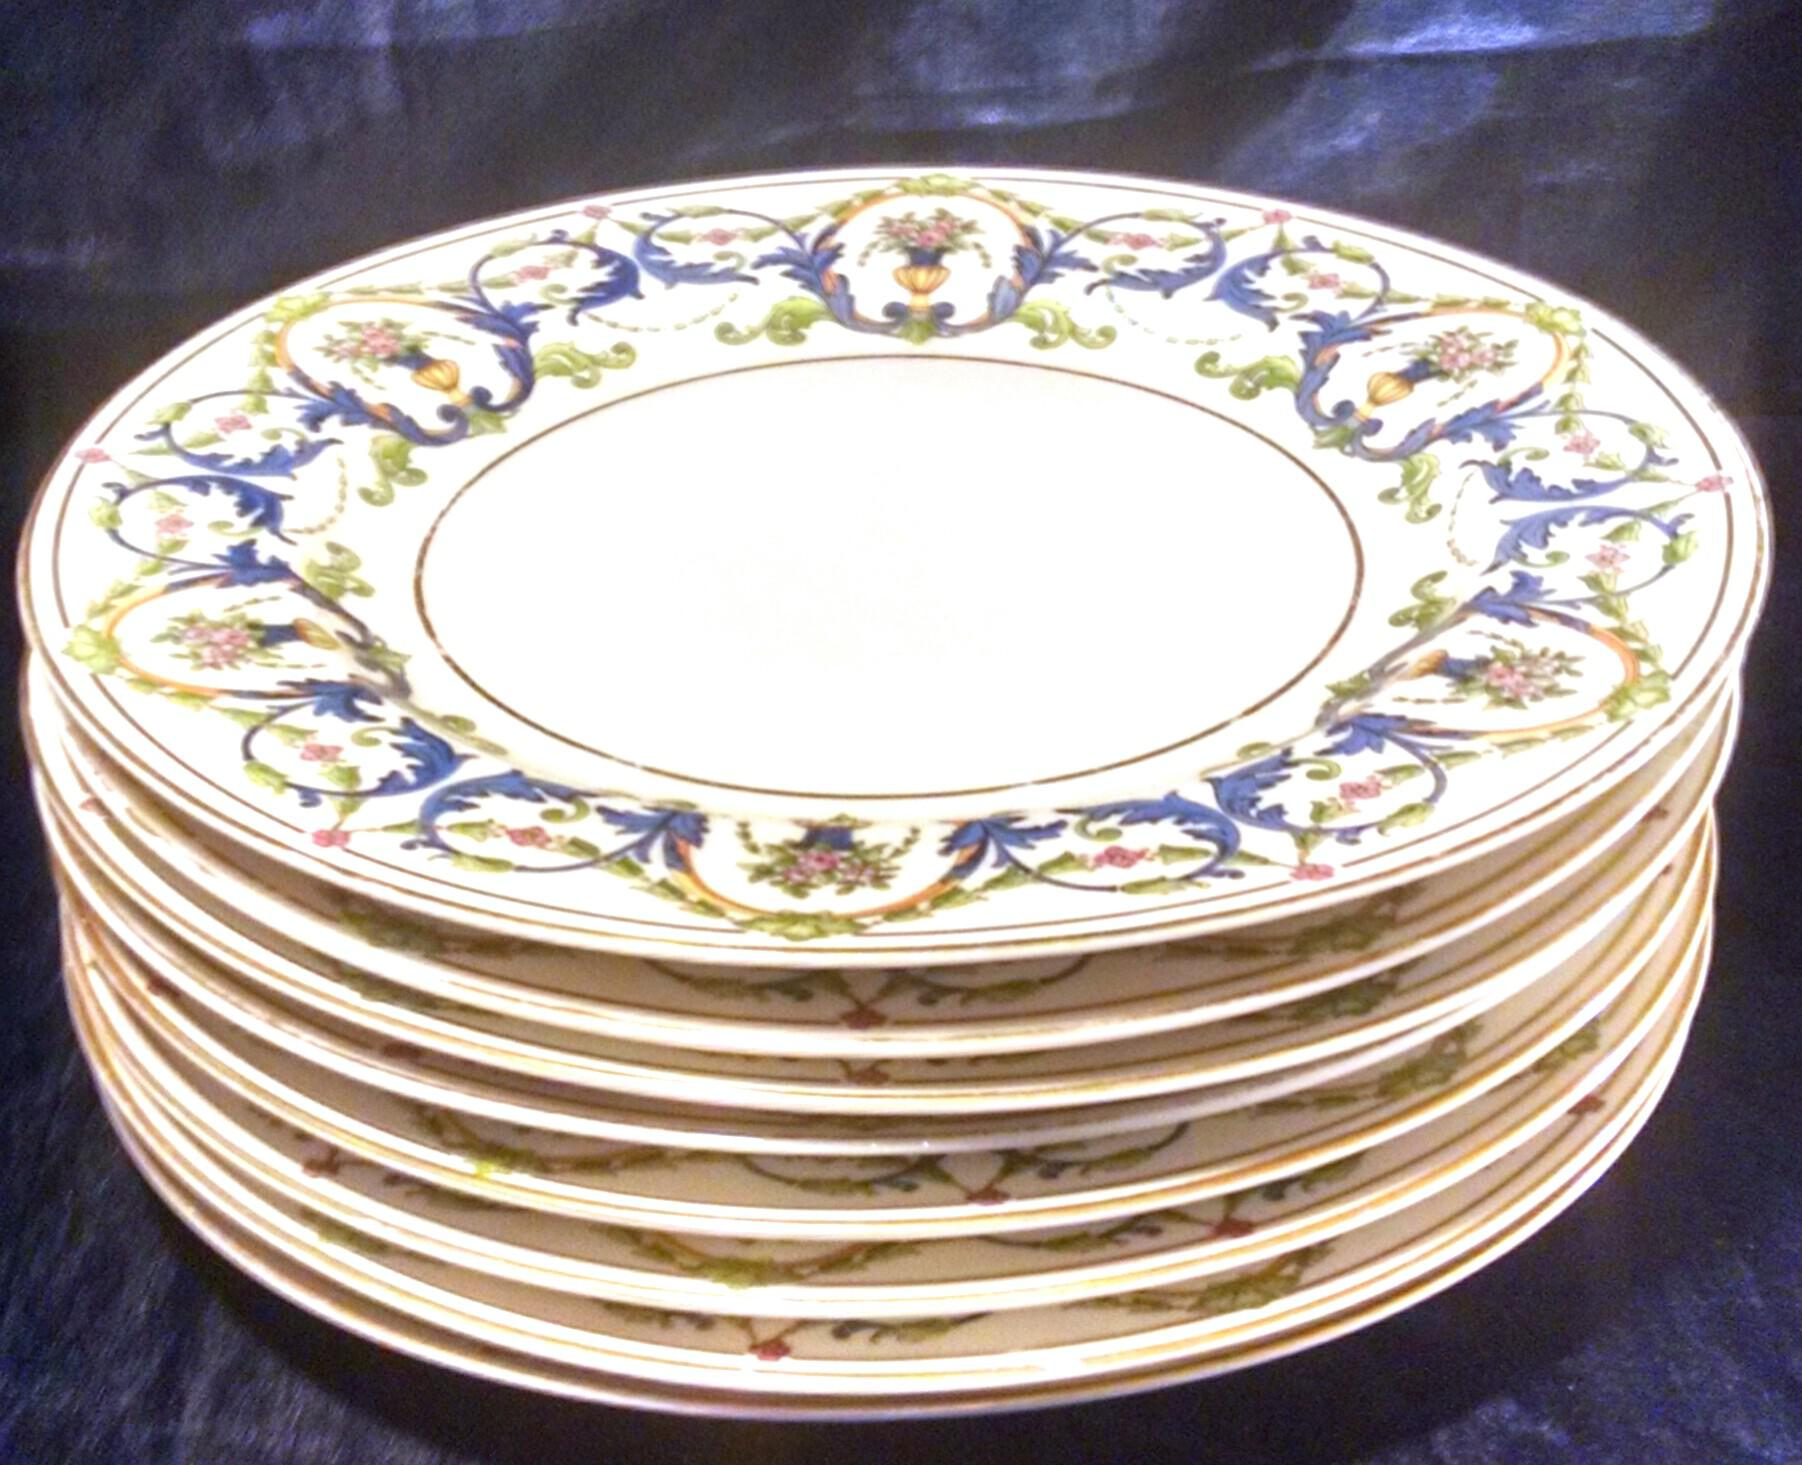 Rosenthal Selb Bavaria Gold Trim Dinner Plates - Set of 8 - Image 3 of 9  sc 1 st  Chairish : cheap dinner plate sets - pezcame.com